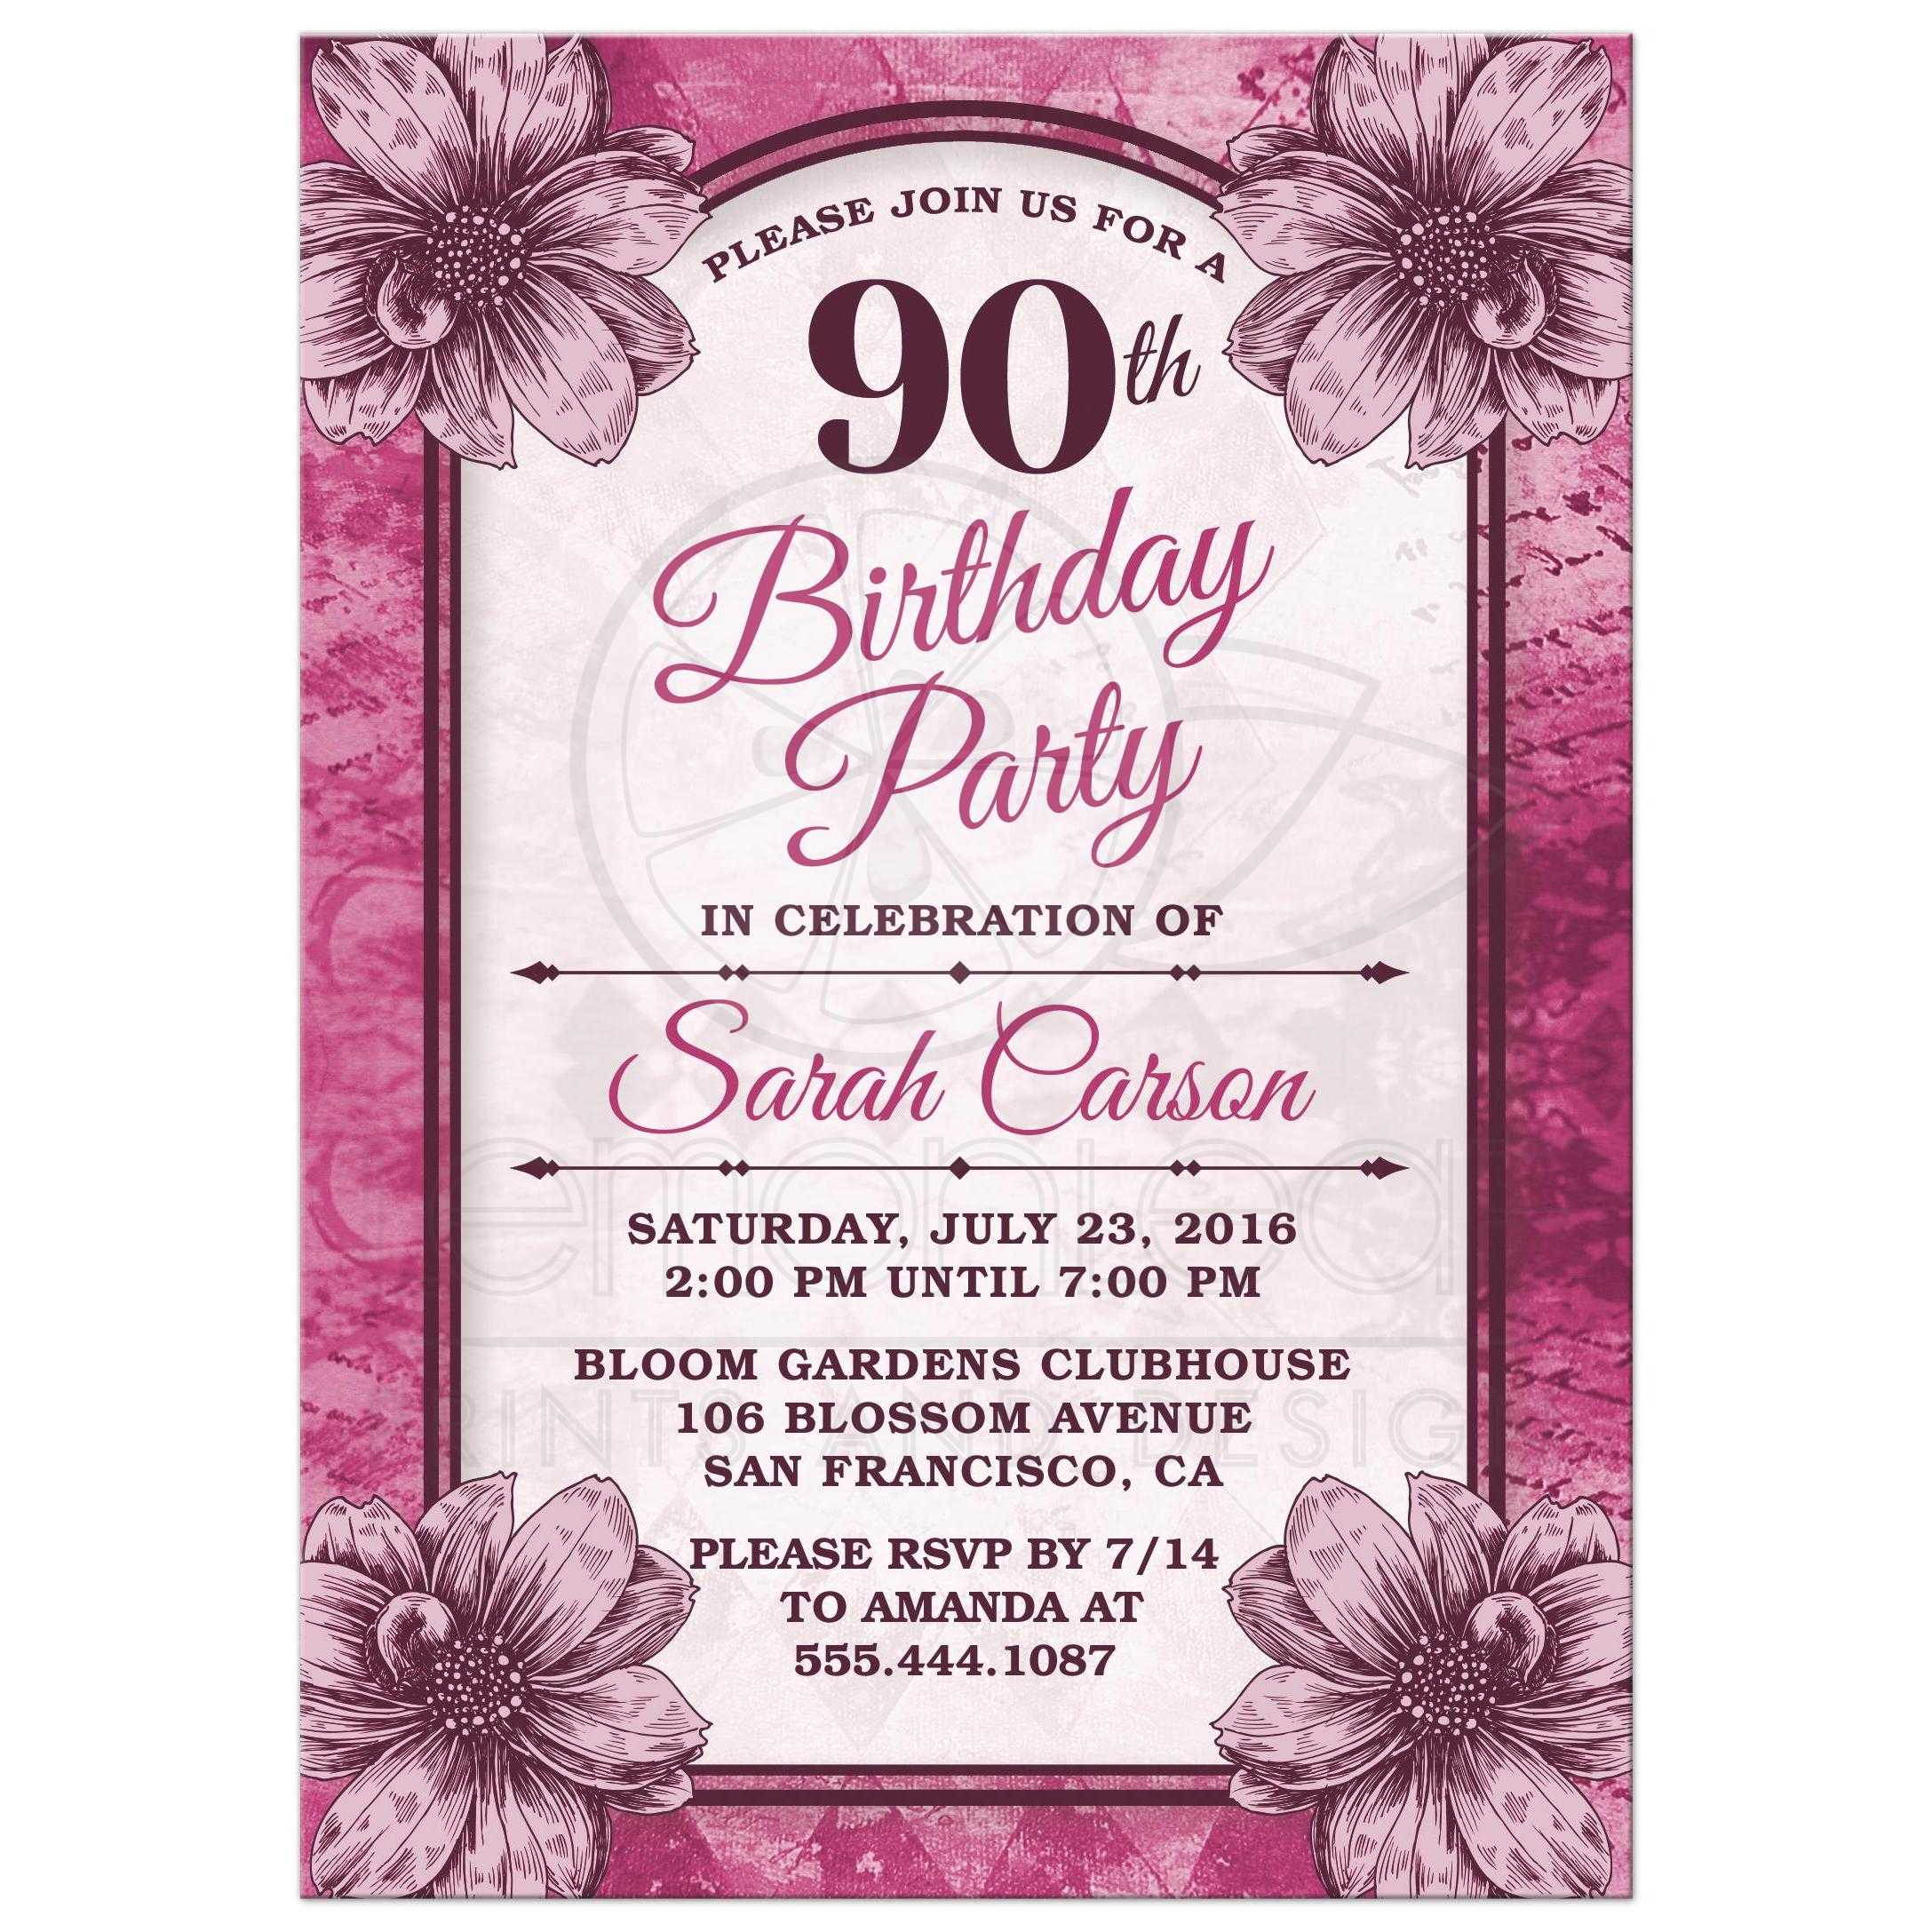 90th birthday party invitations fuchsia flowers fuchsia flowers 90th birthday party invitations front izmirmasajfo